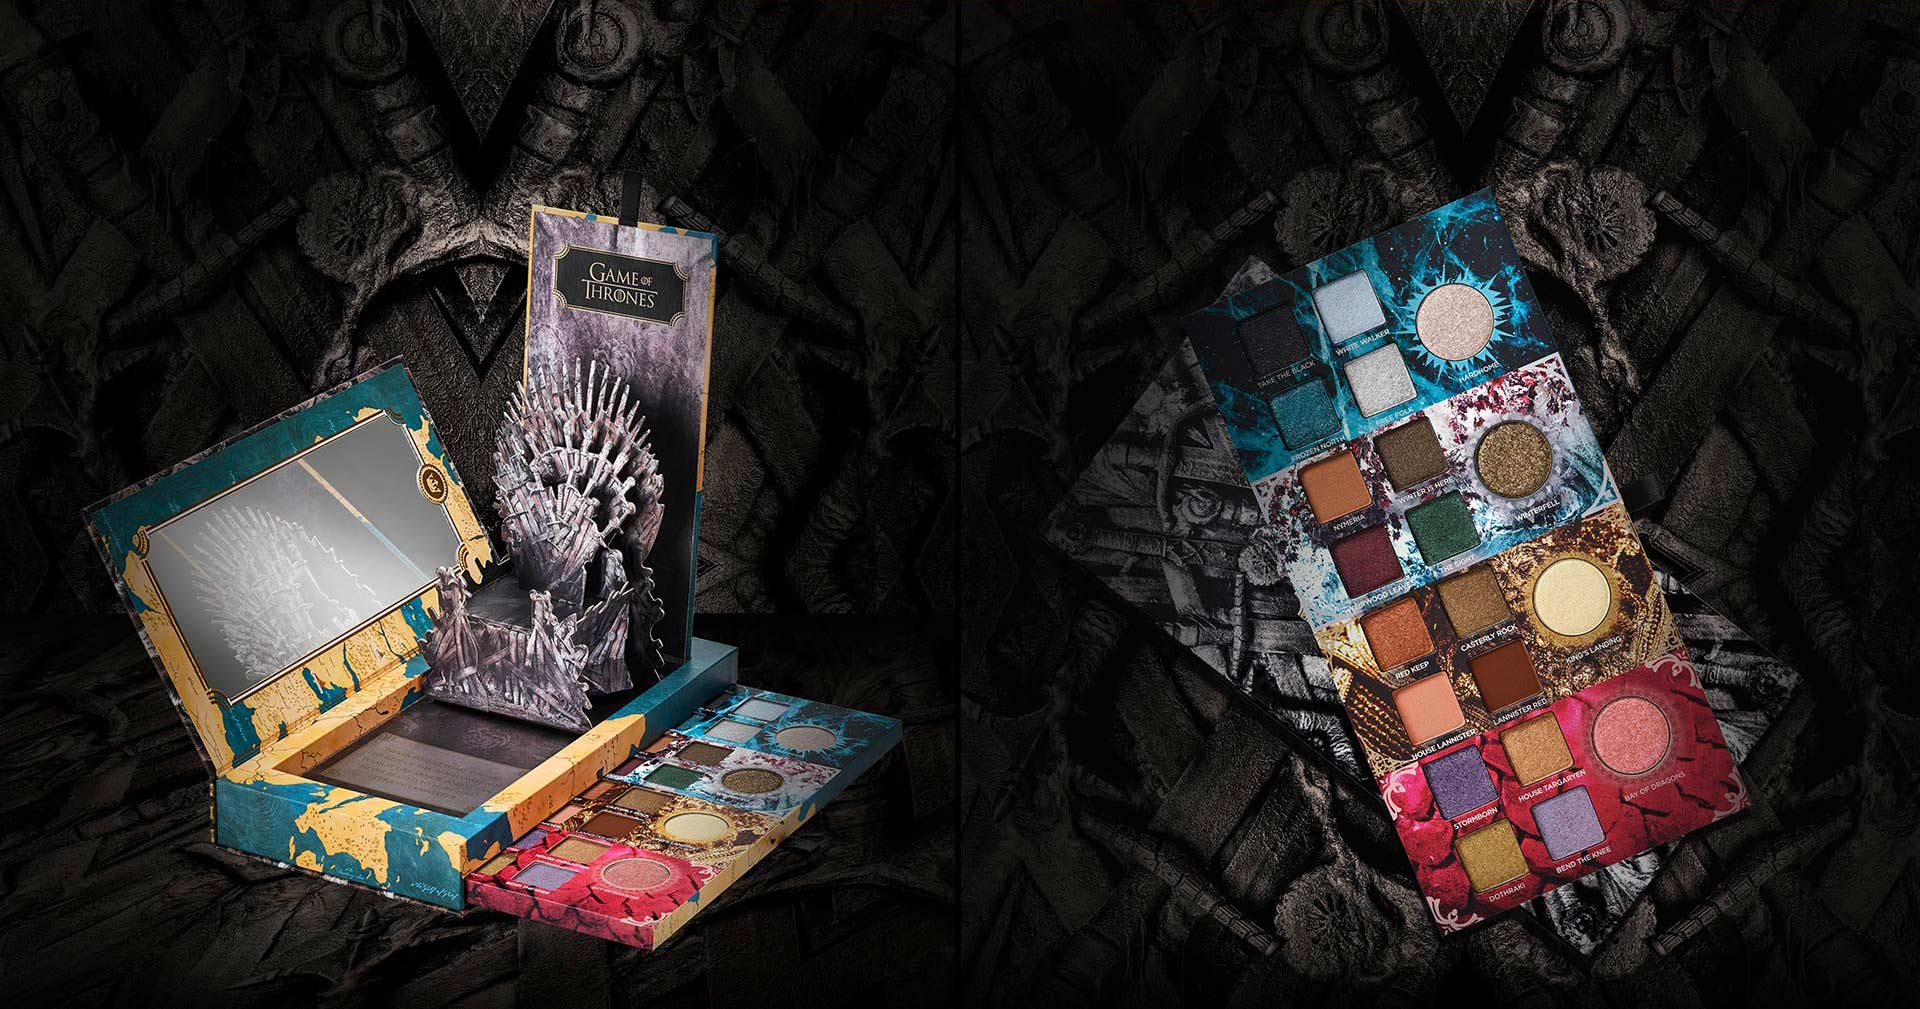 Urban Decay x Game of Thrones